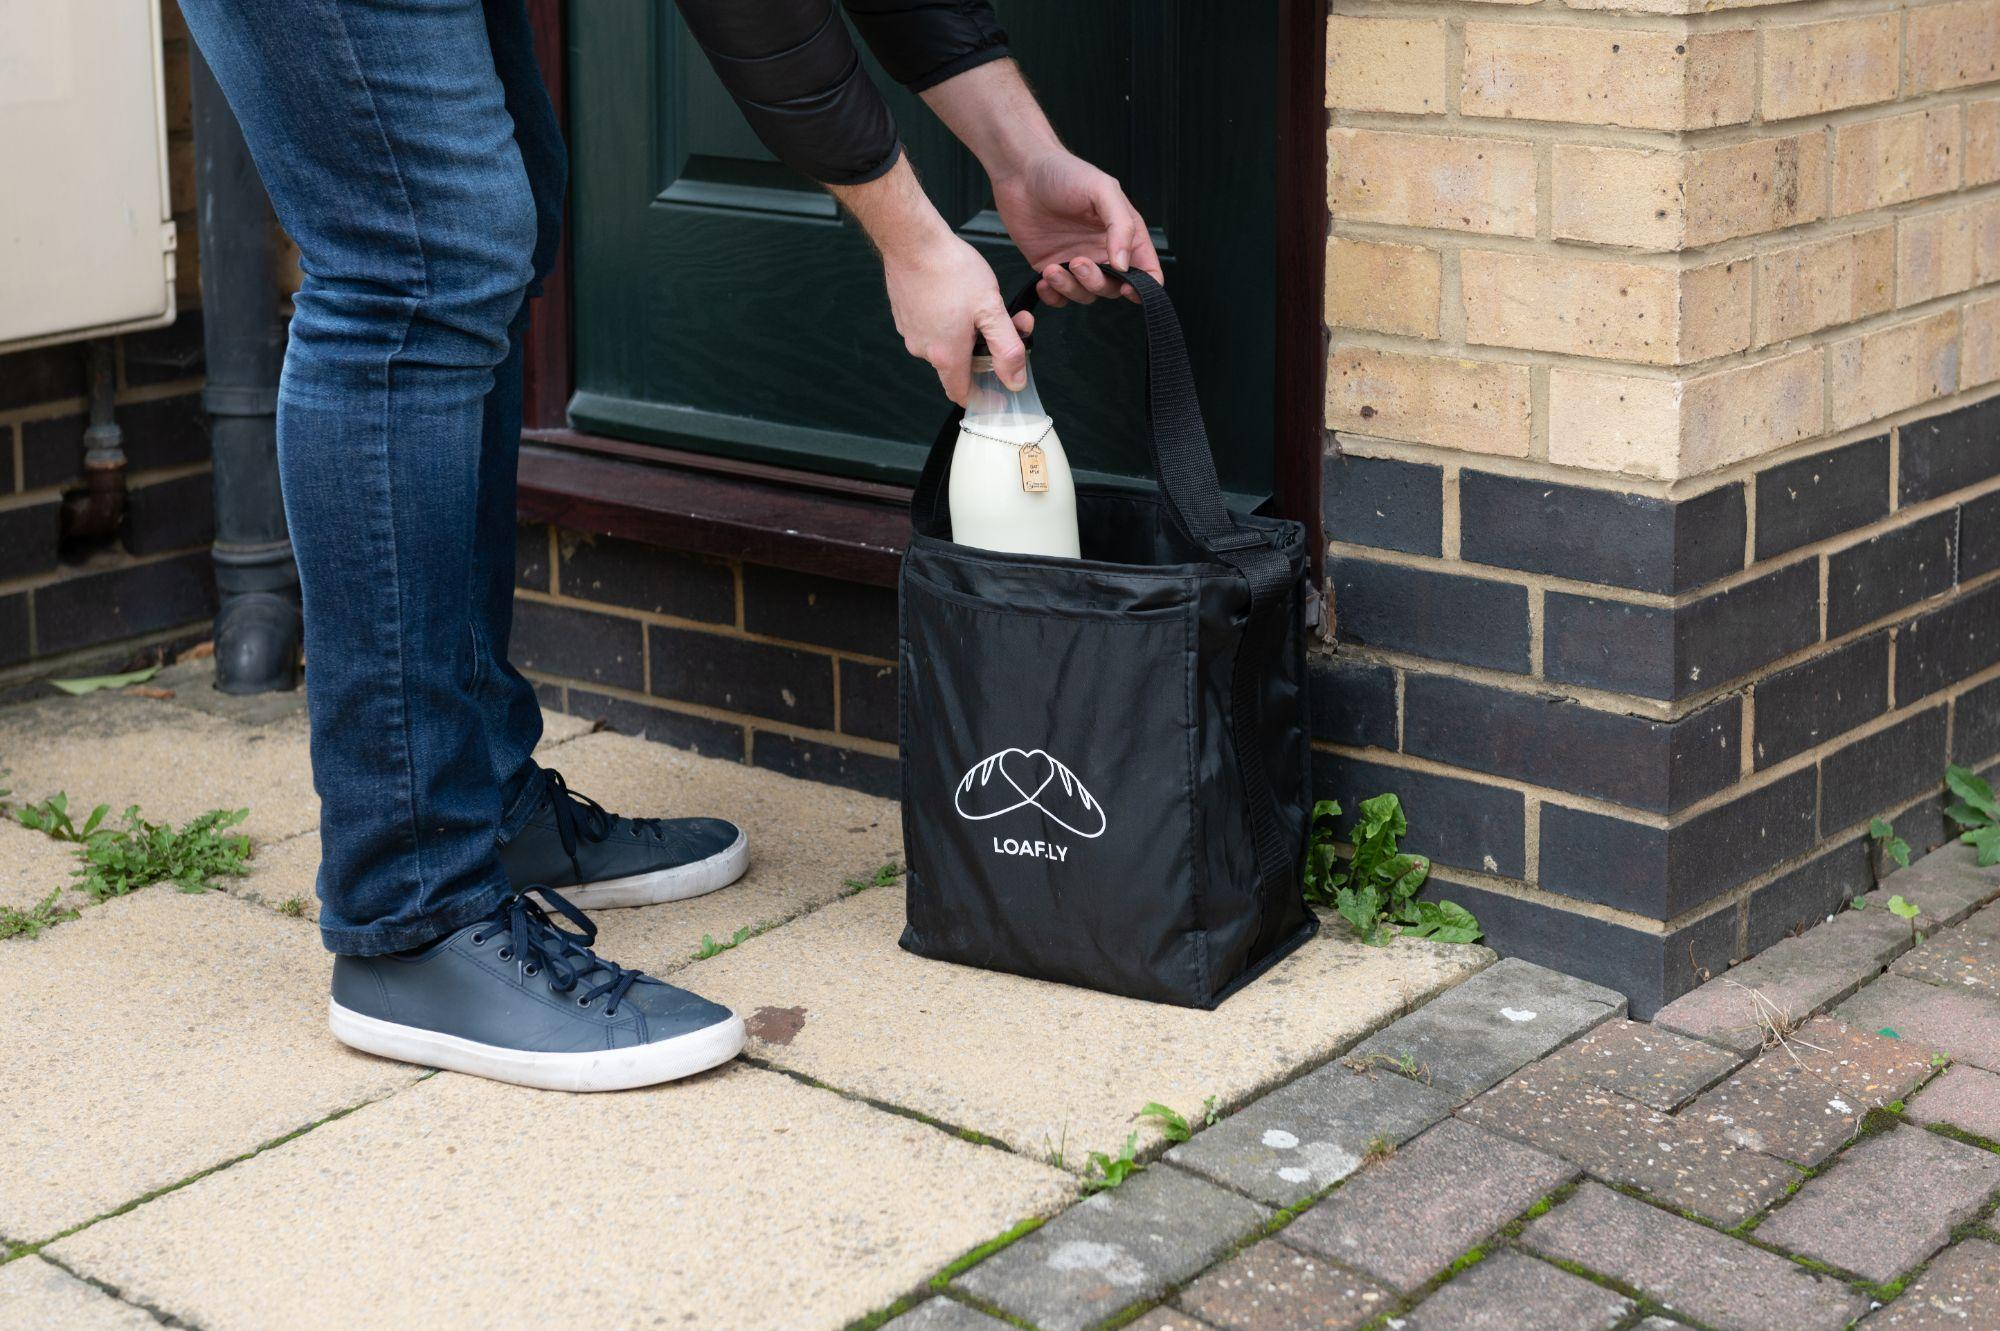 A bottle of milk being lowered into a loafly delivery bag